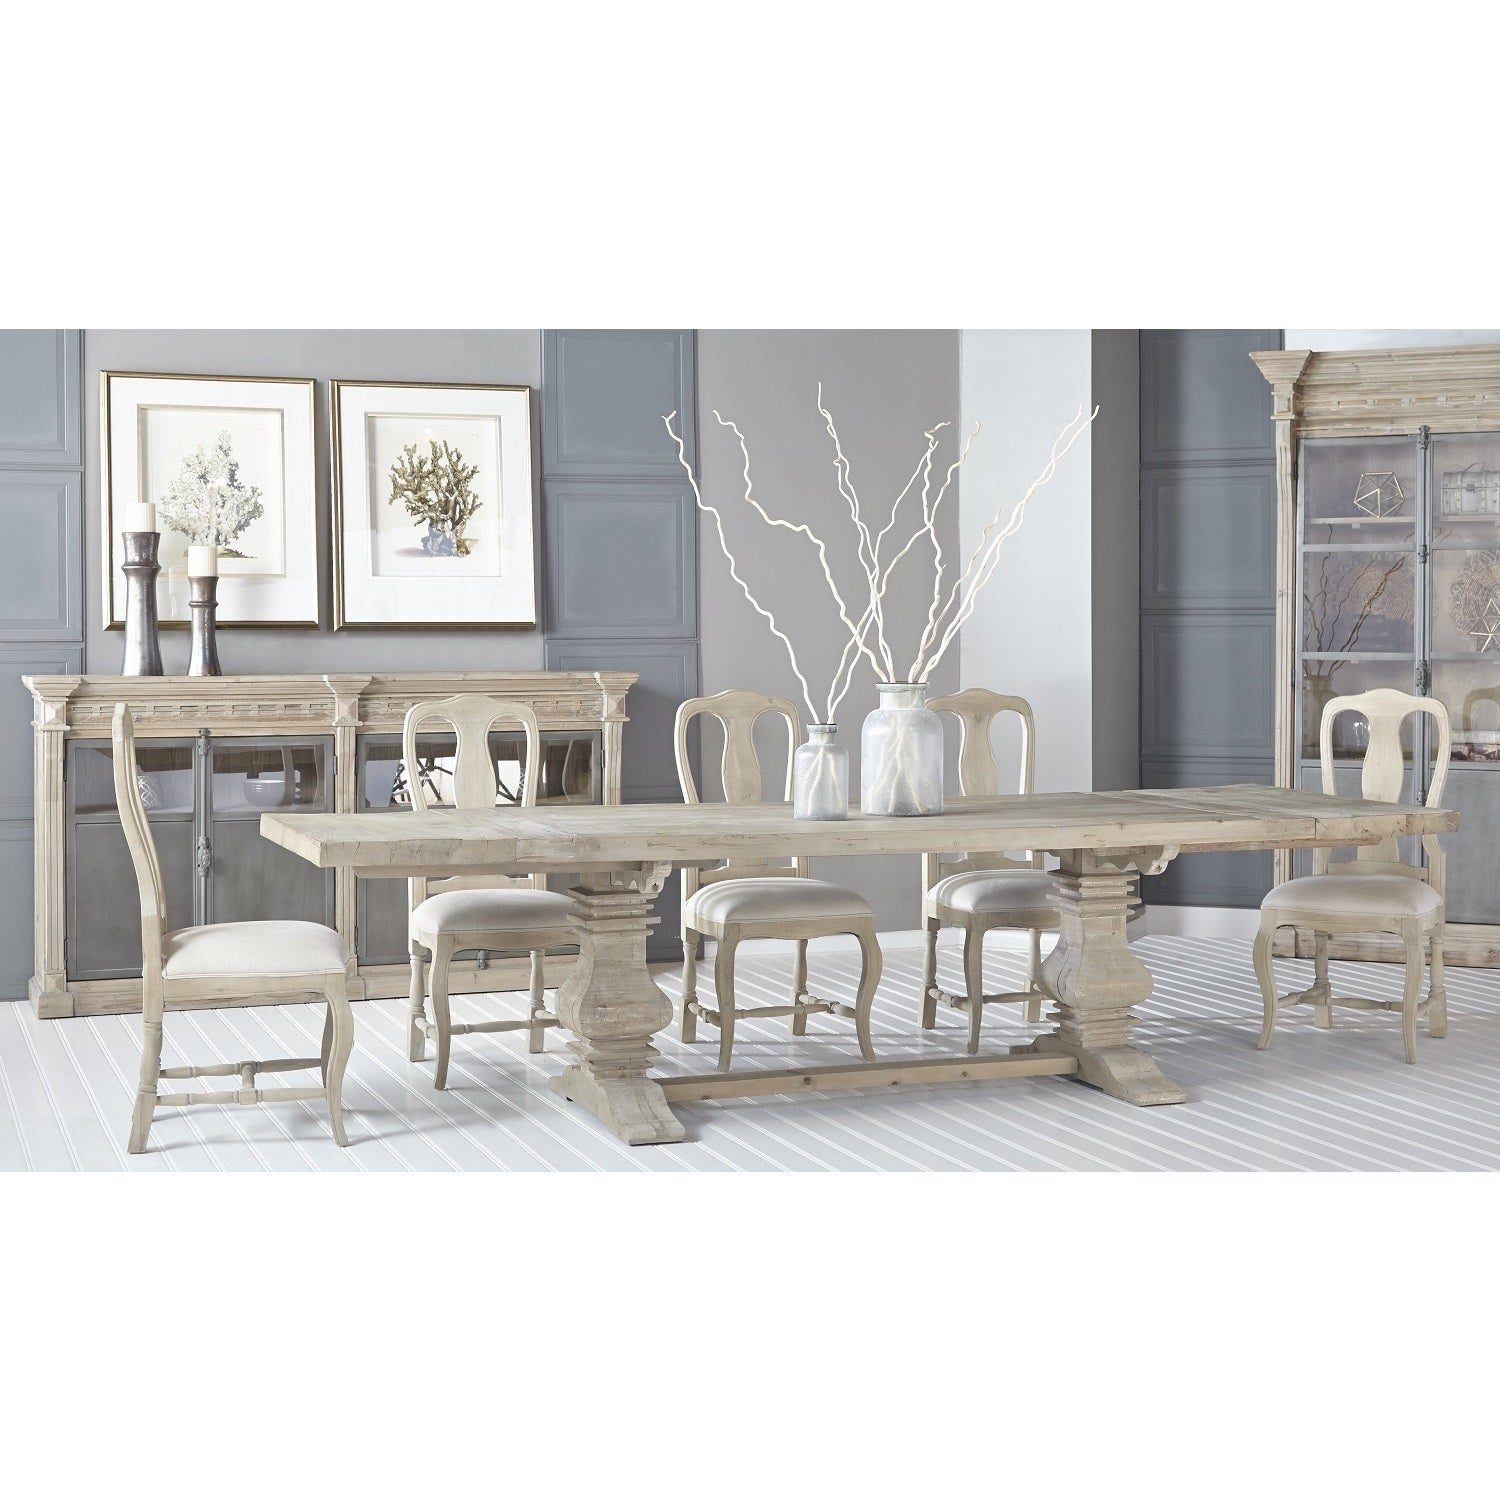 Lester Distressed Recycled European Pine Double-pedestal Dining Table - Grey